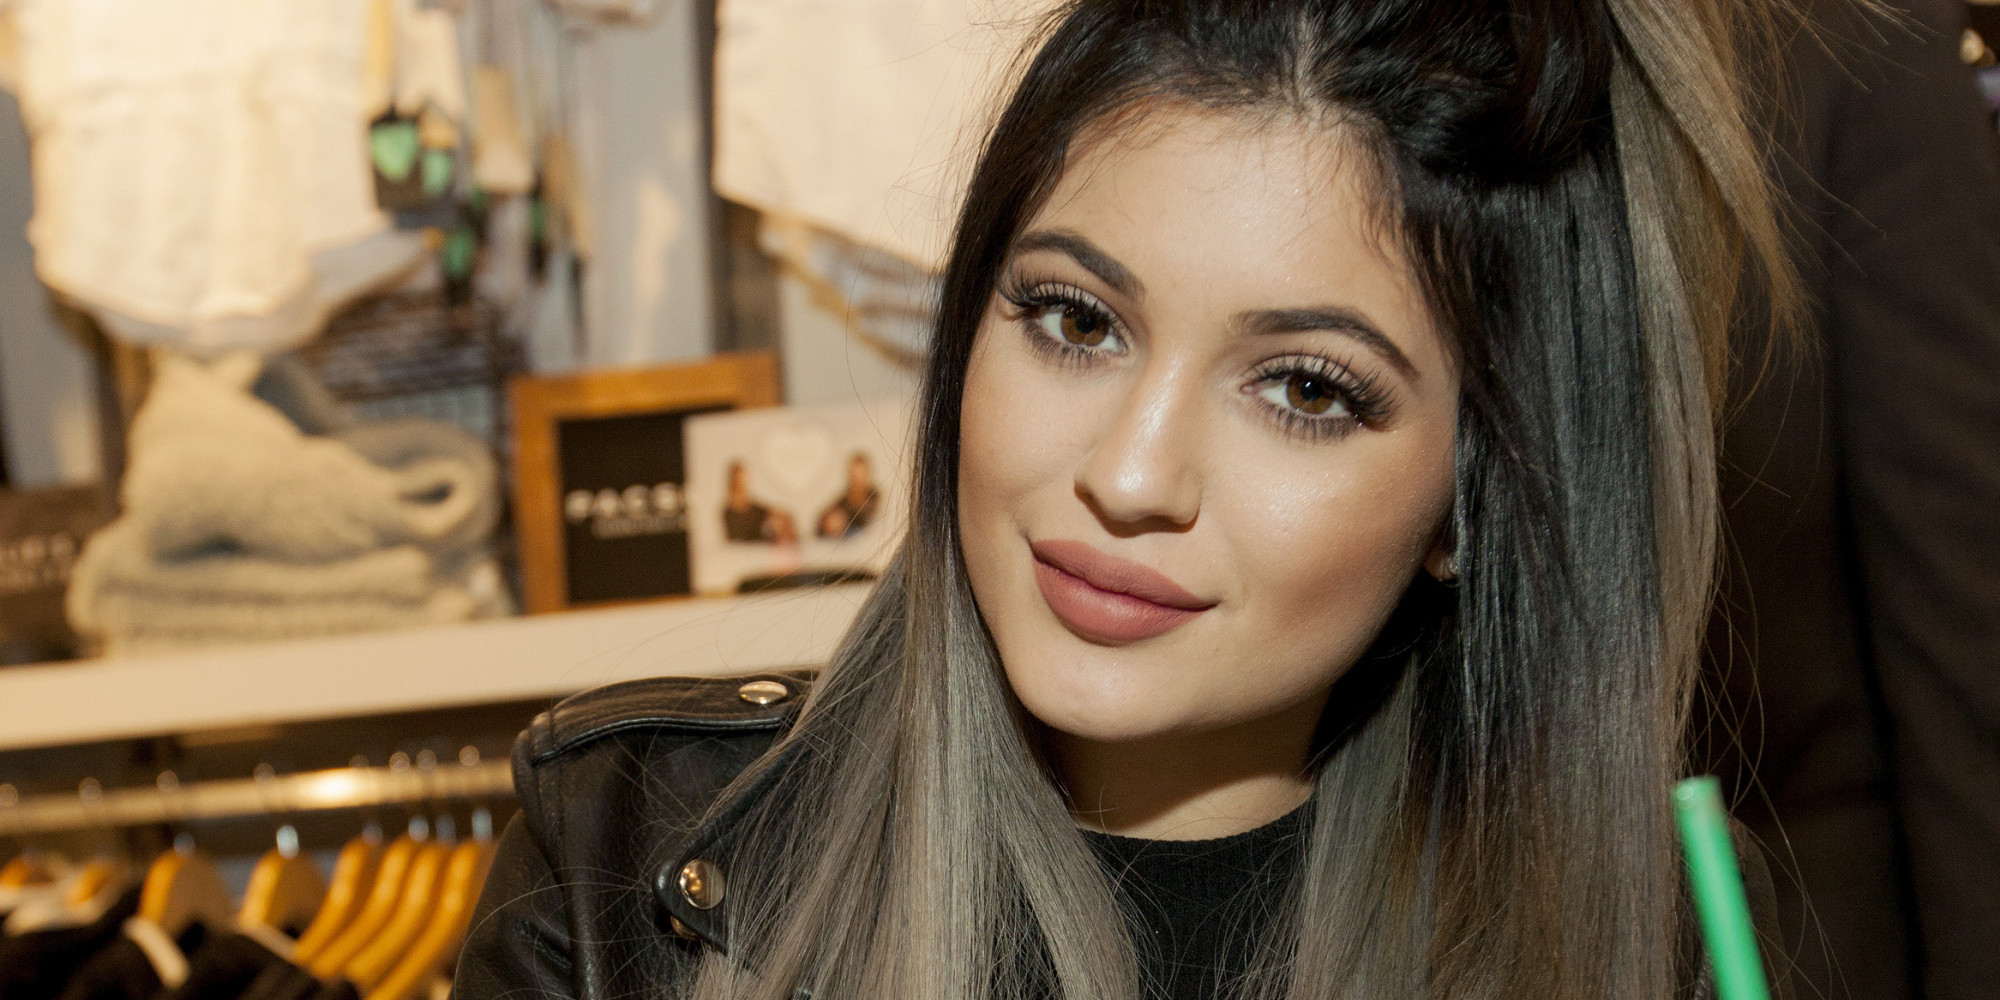 Kylie Jenner at the launch of the Kendall and Kylie Holiday Collection at PacSun in Woodfield Mall on Saturday, Nov. 8, 2014, in Schaumburg, Ill. (Photo by Barry Brecheisen/Invision for Invision for PacSun/AP Images)